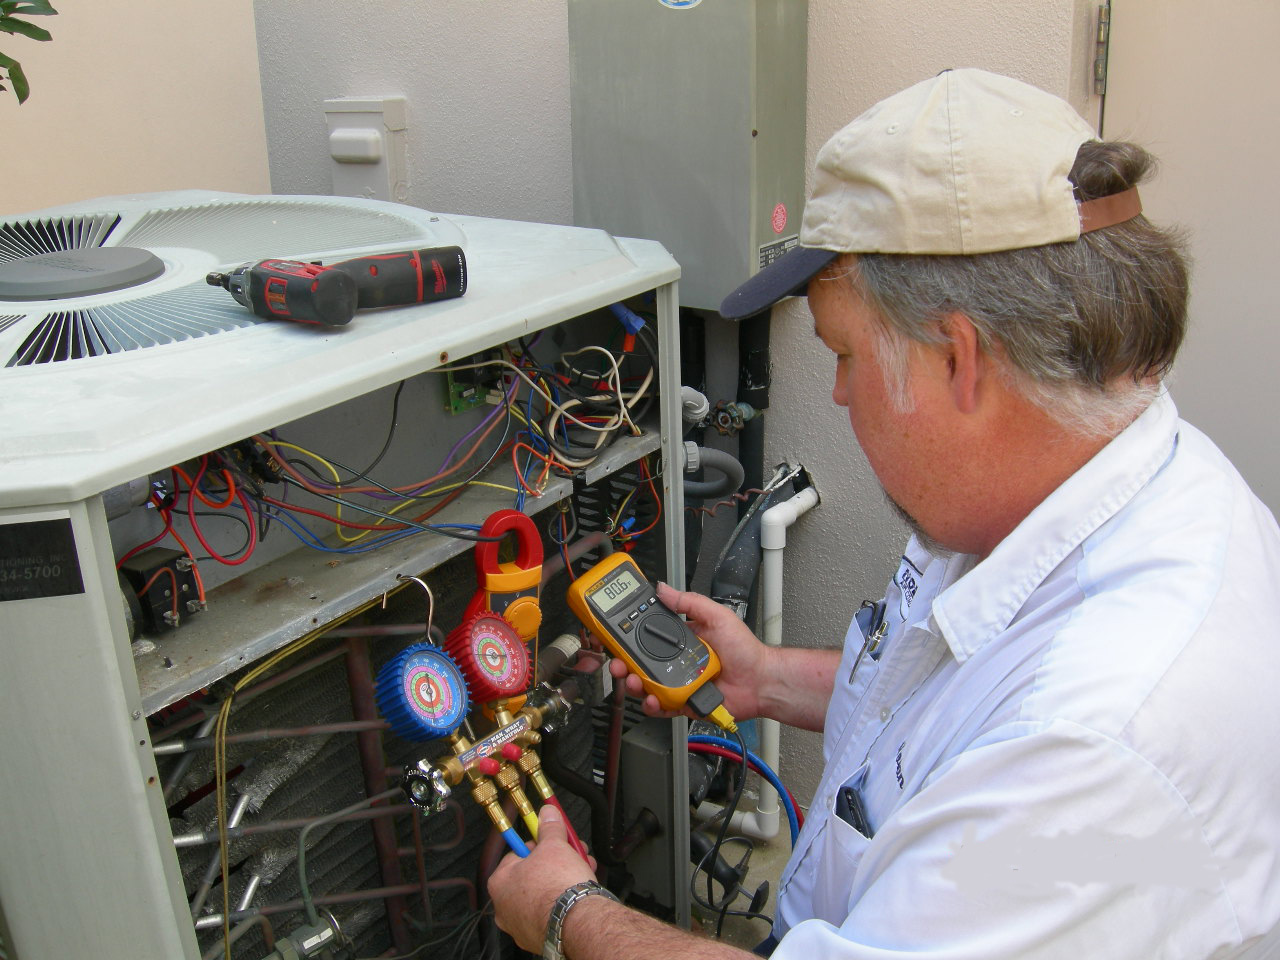 Local Air Conditioning Repair And Service Denver, CO 80220